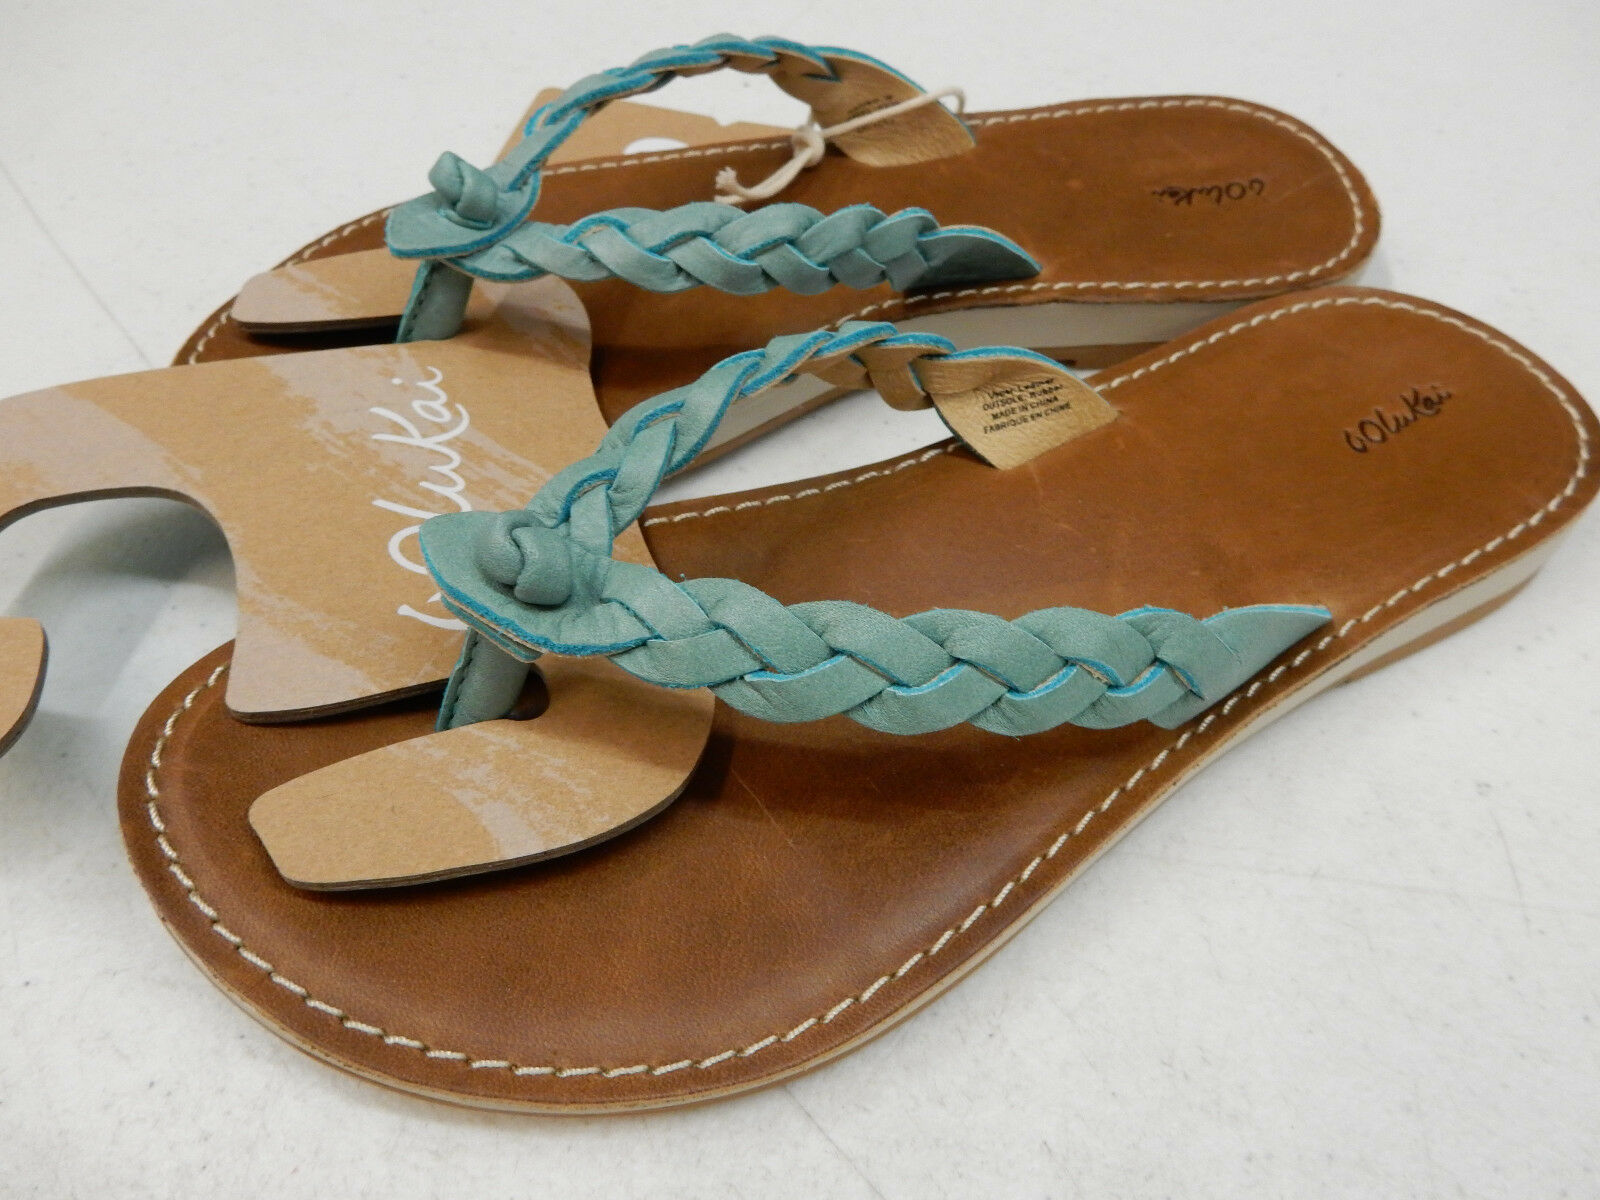 OLUKAI WOMENS SANDALS KAHIKO SEA TAN SIZE SIZE SIZE 6 a4e368